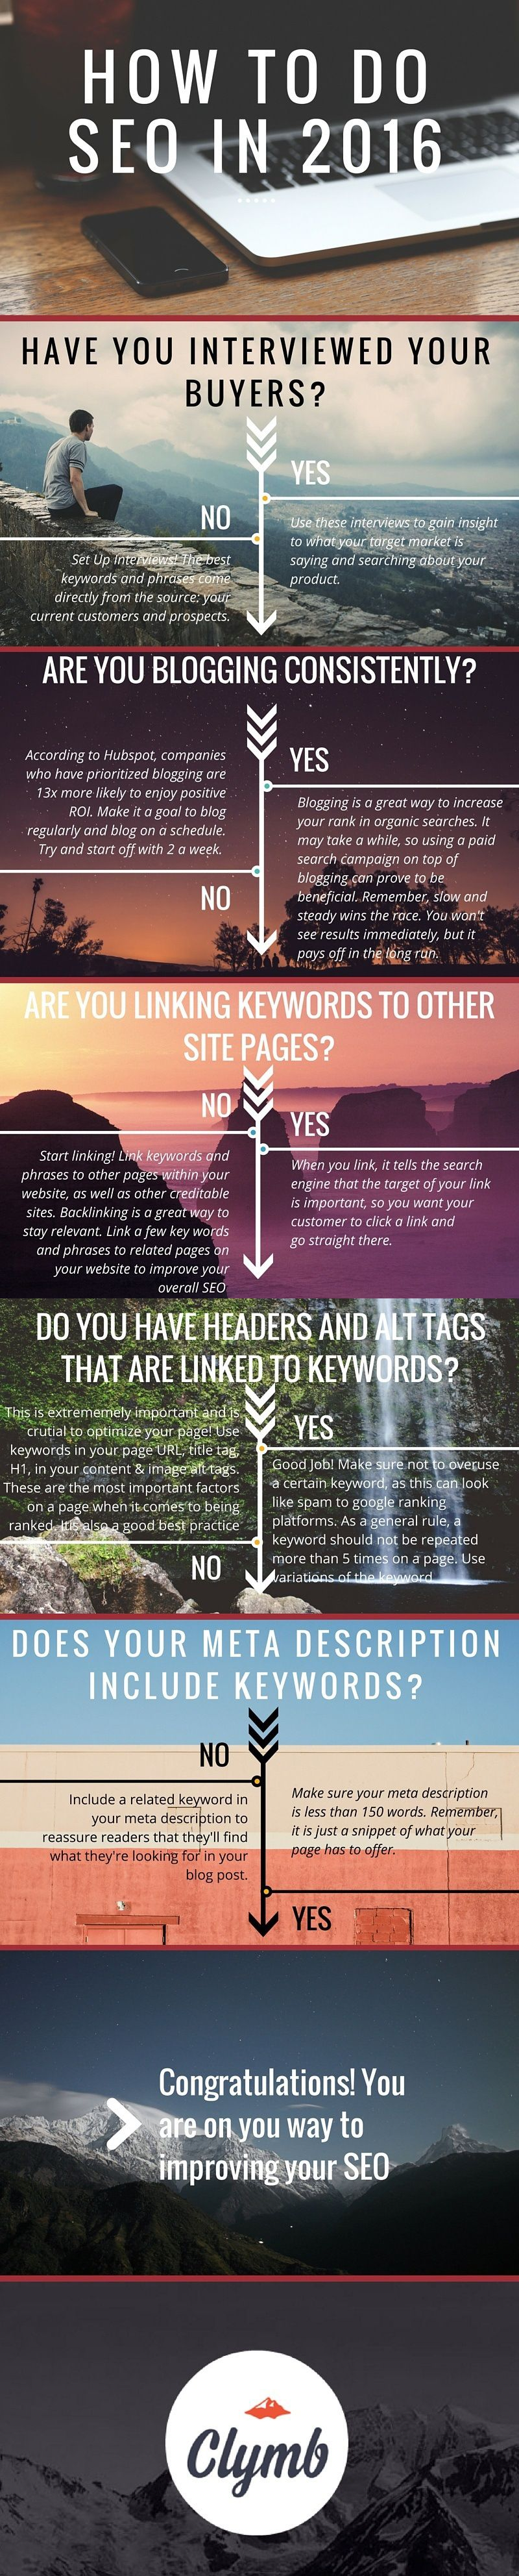 Want great hints on SEO? Head to our great info!